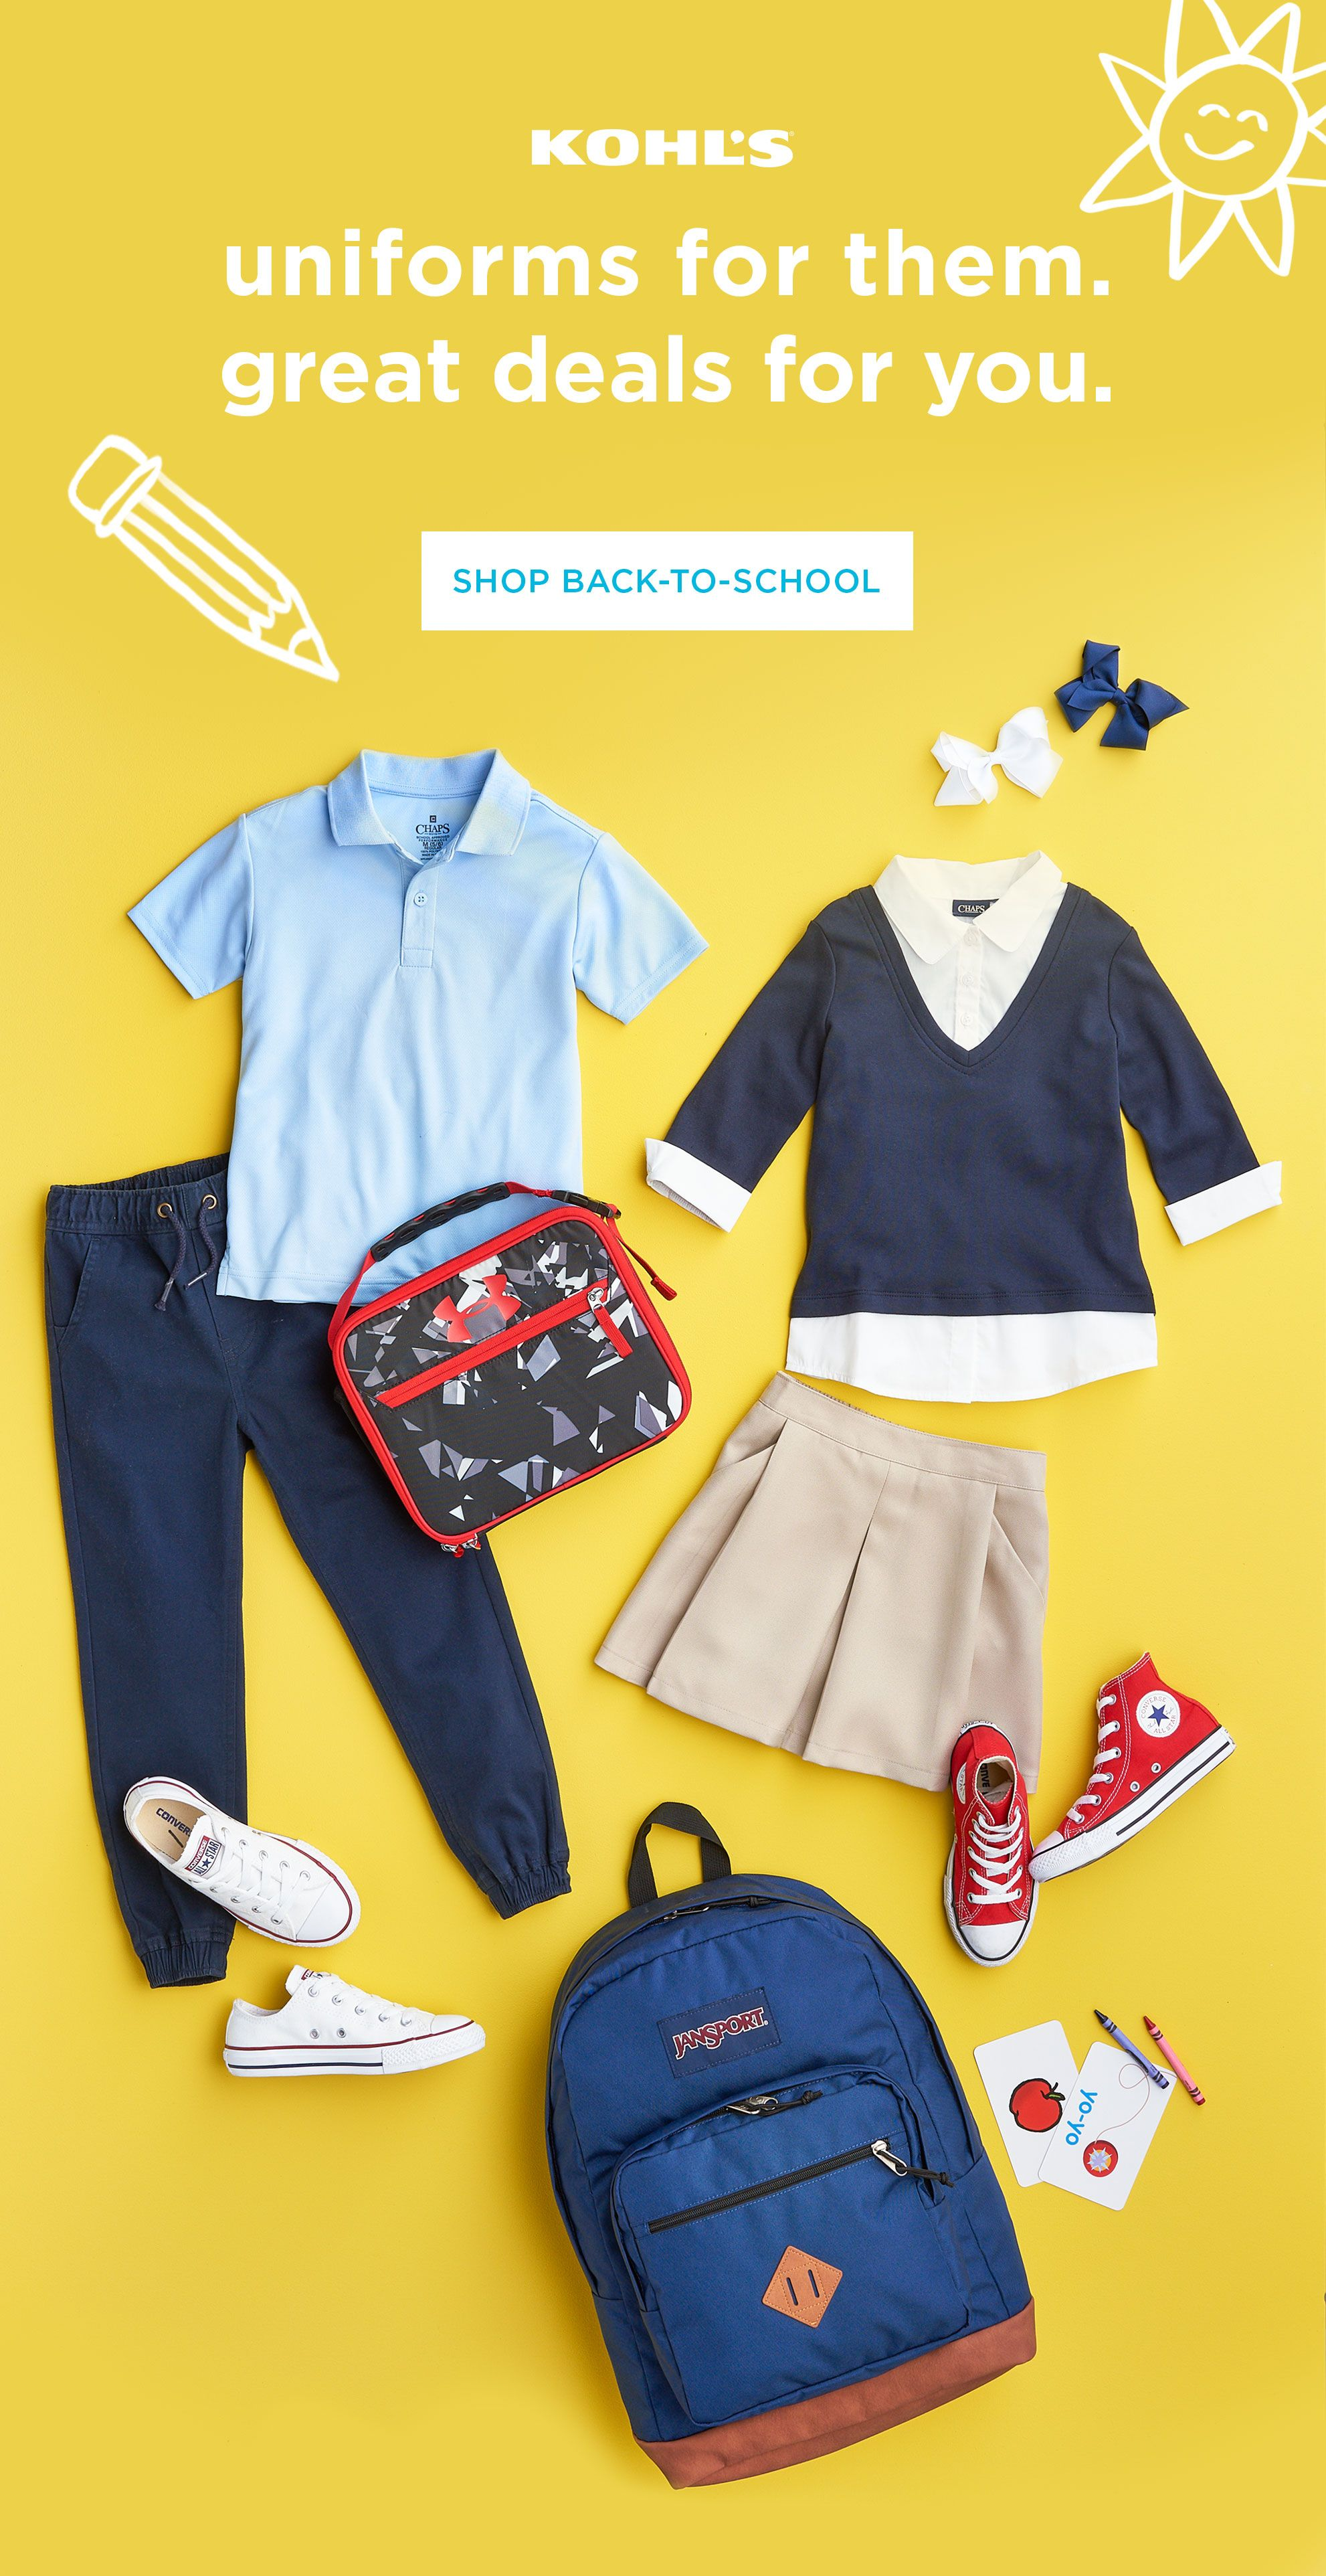 7a6177852 Who says school uniforms have to be boring?! Stock up on basics like polos,  khakis, skirts and more, then let your kids layer on the style with  colorful ...